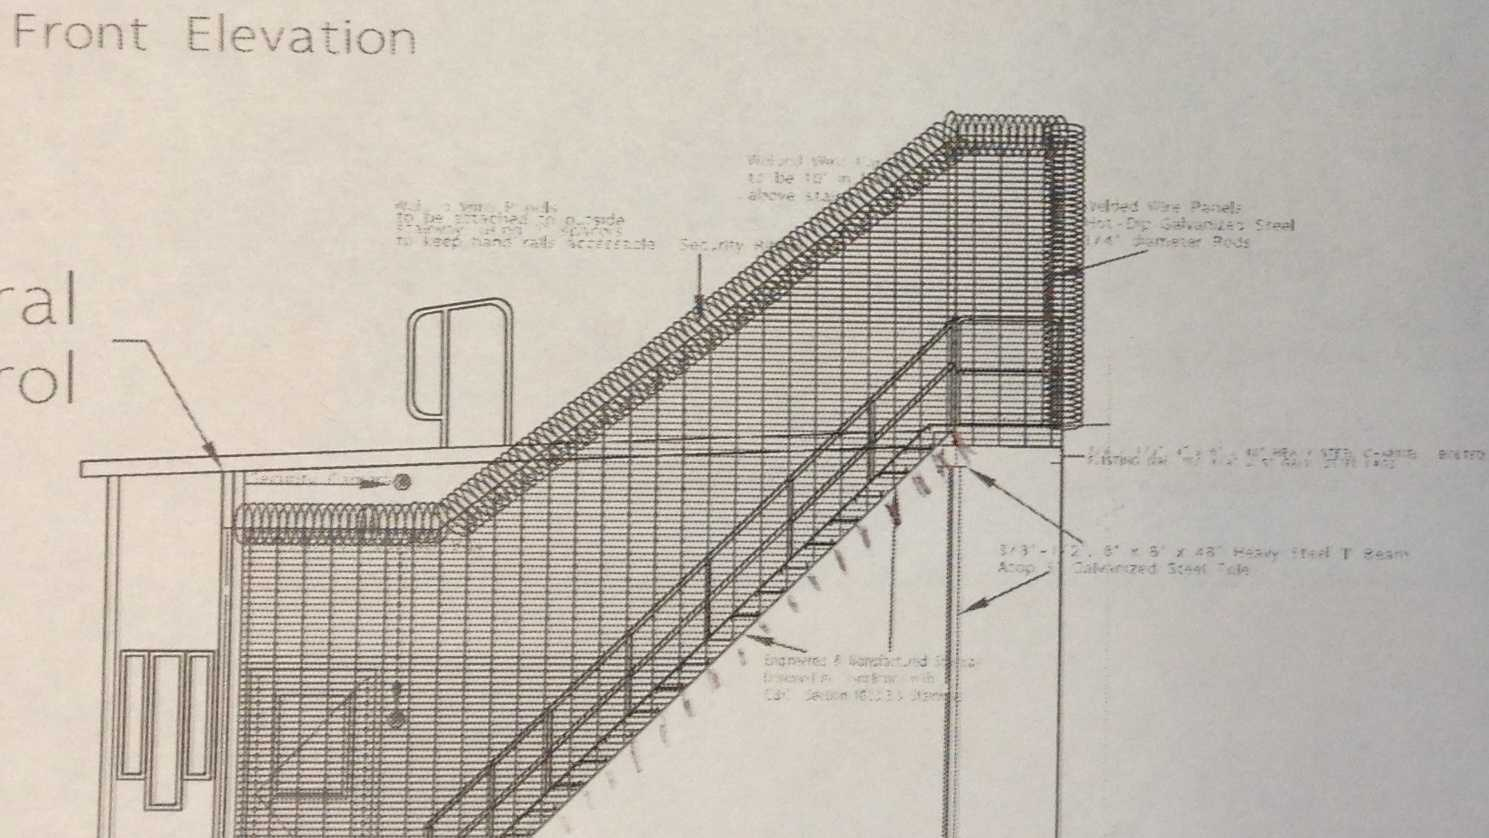 A blueprint design of the 20 step stairwell that Mule Creek Prison says will cost $600,000.